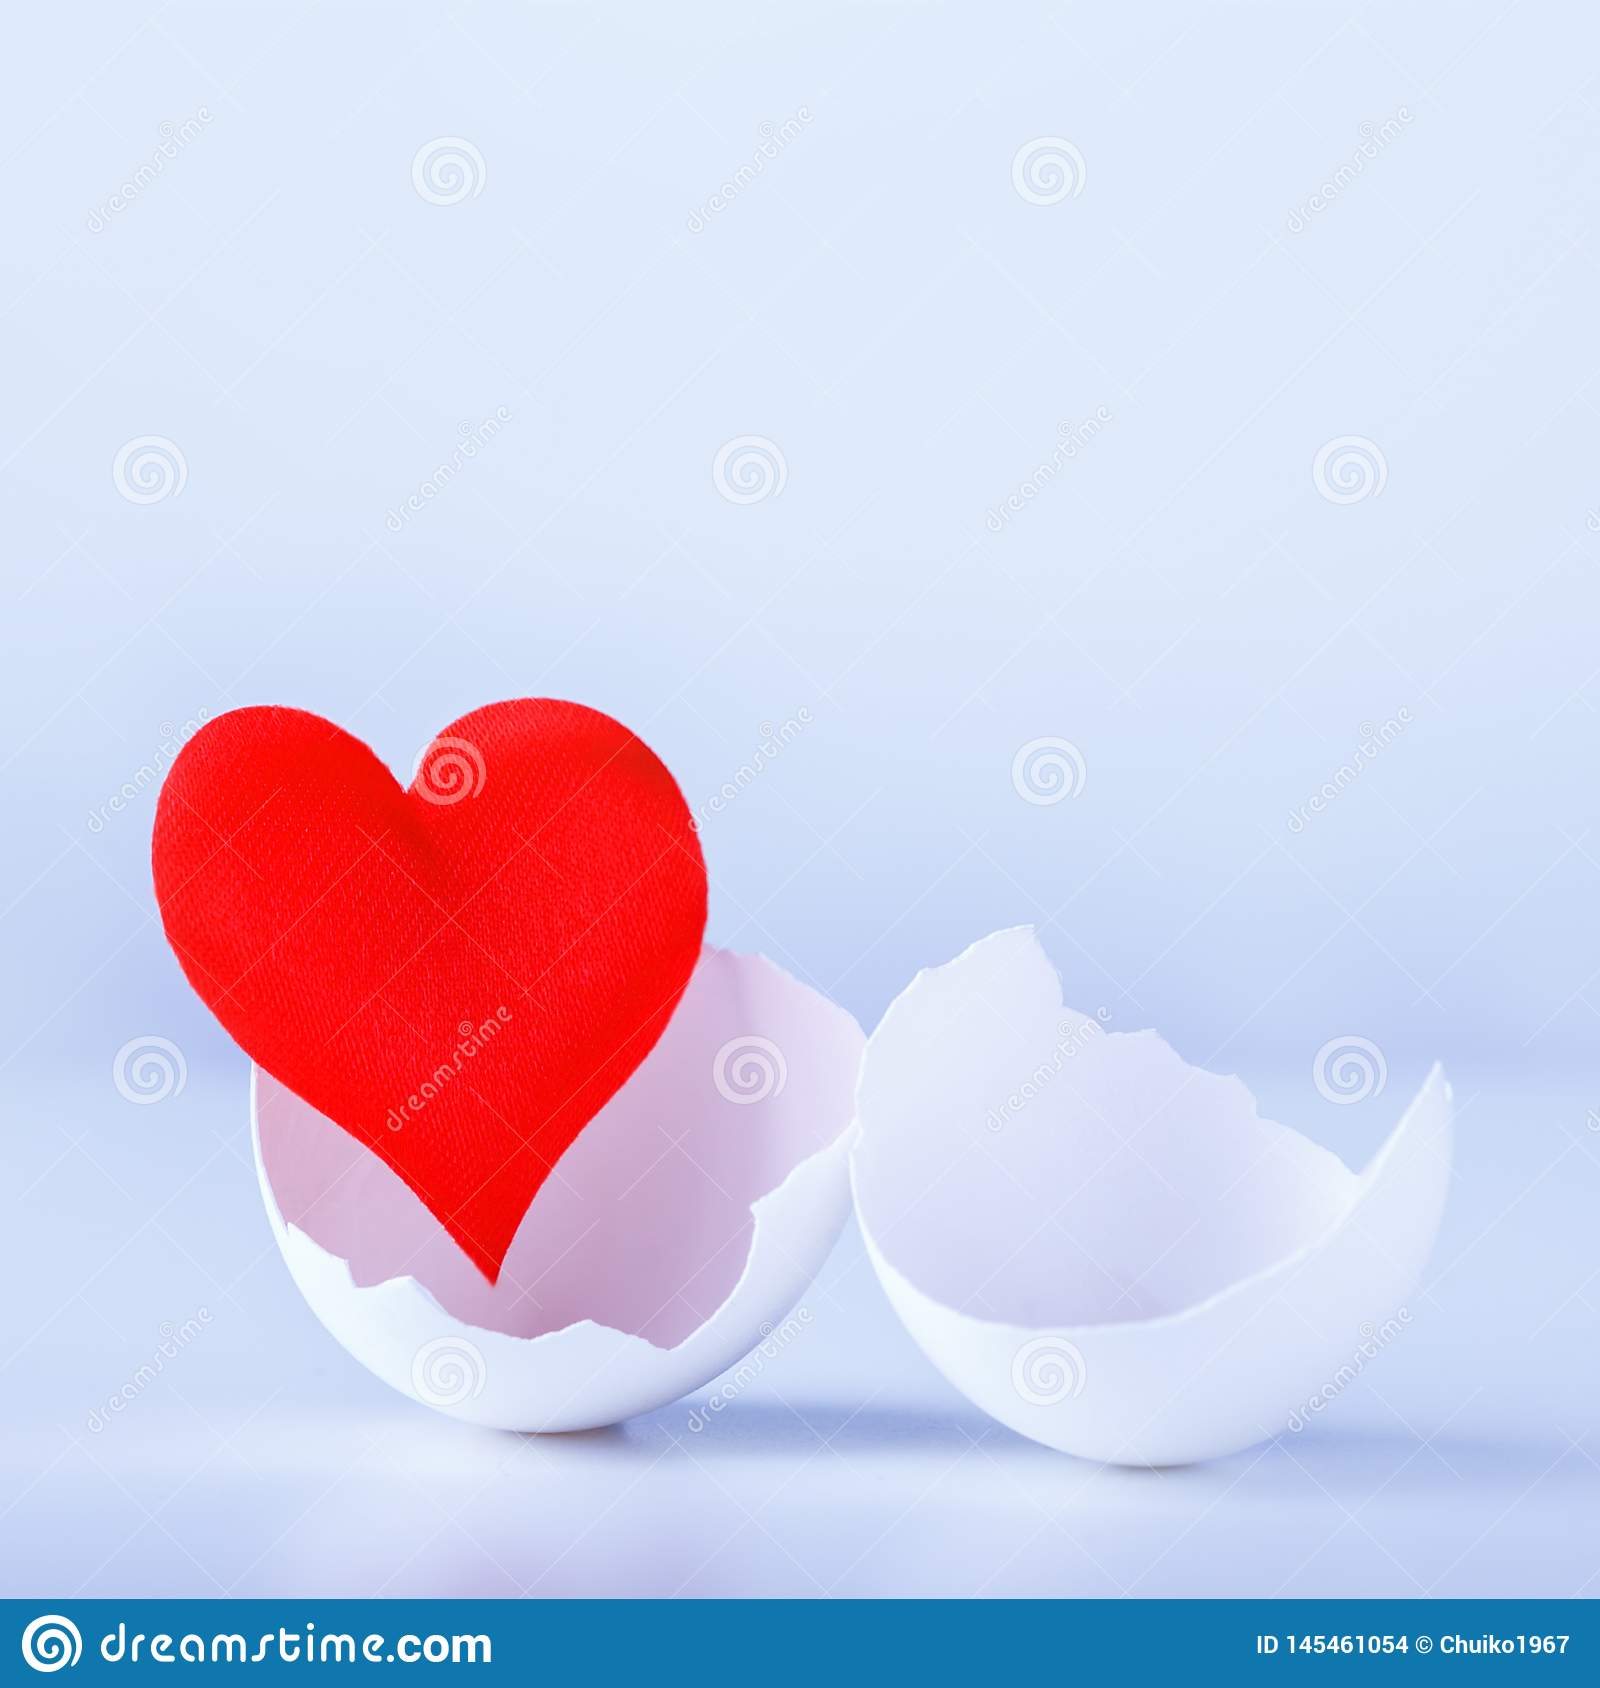 Heart in an egg shell on a white background. Symbol birth new life.